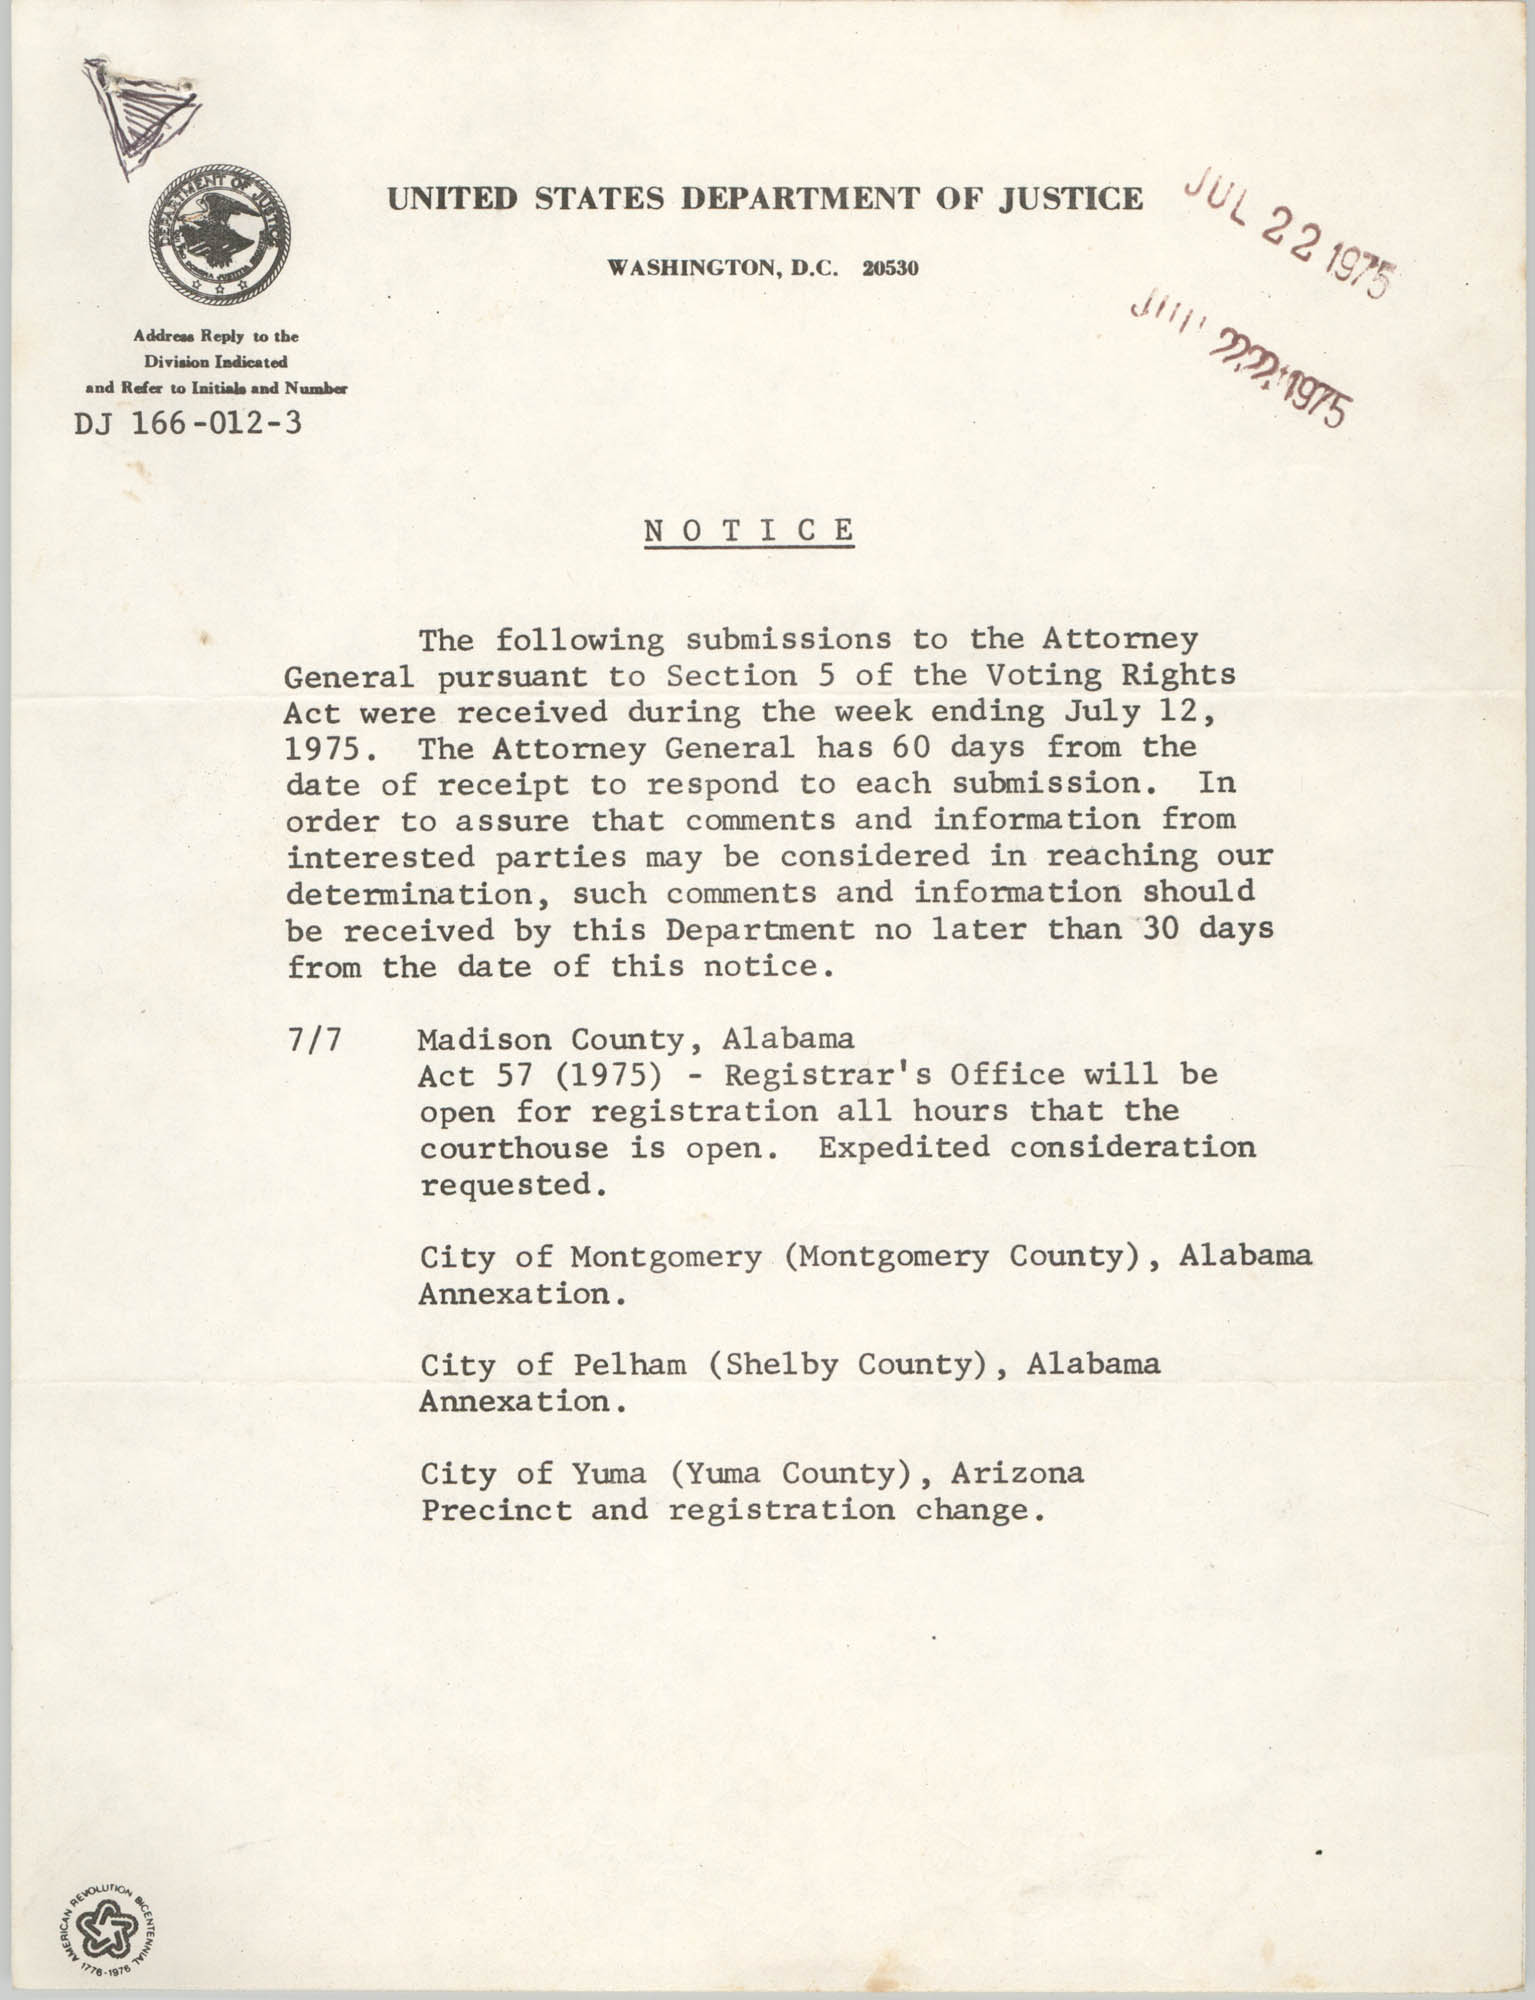 United States Department of Justice Notice, July 22, 1975